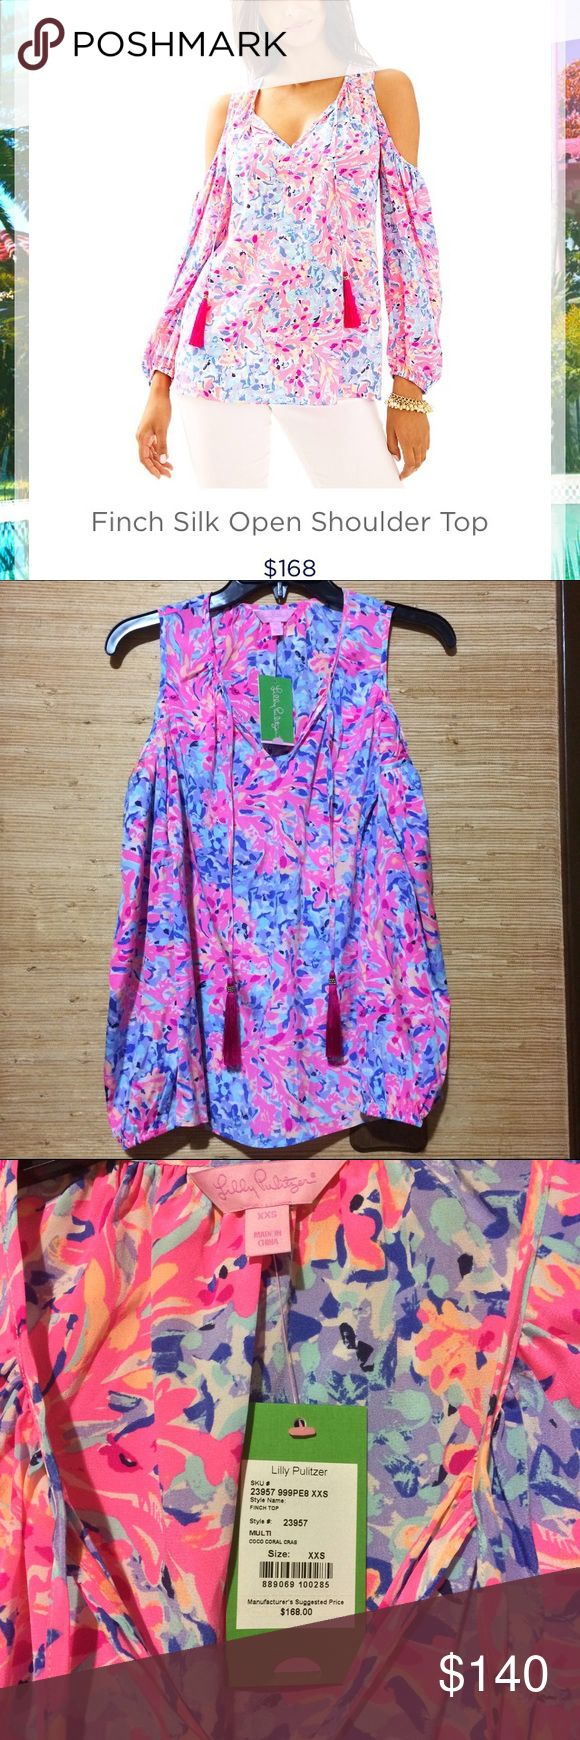 Lilly Pulitzer Finch Top NWT Lilly Pulitzer Finch top in the brand new print coco coral crab. Silk, cold shoulder top with fun tassels! Size xxs. Lilly Pulitzer Tops Blouses